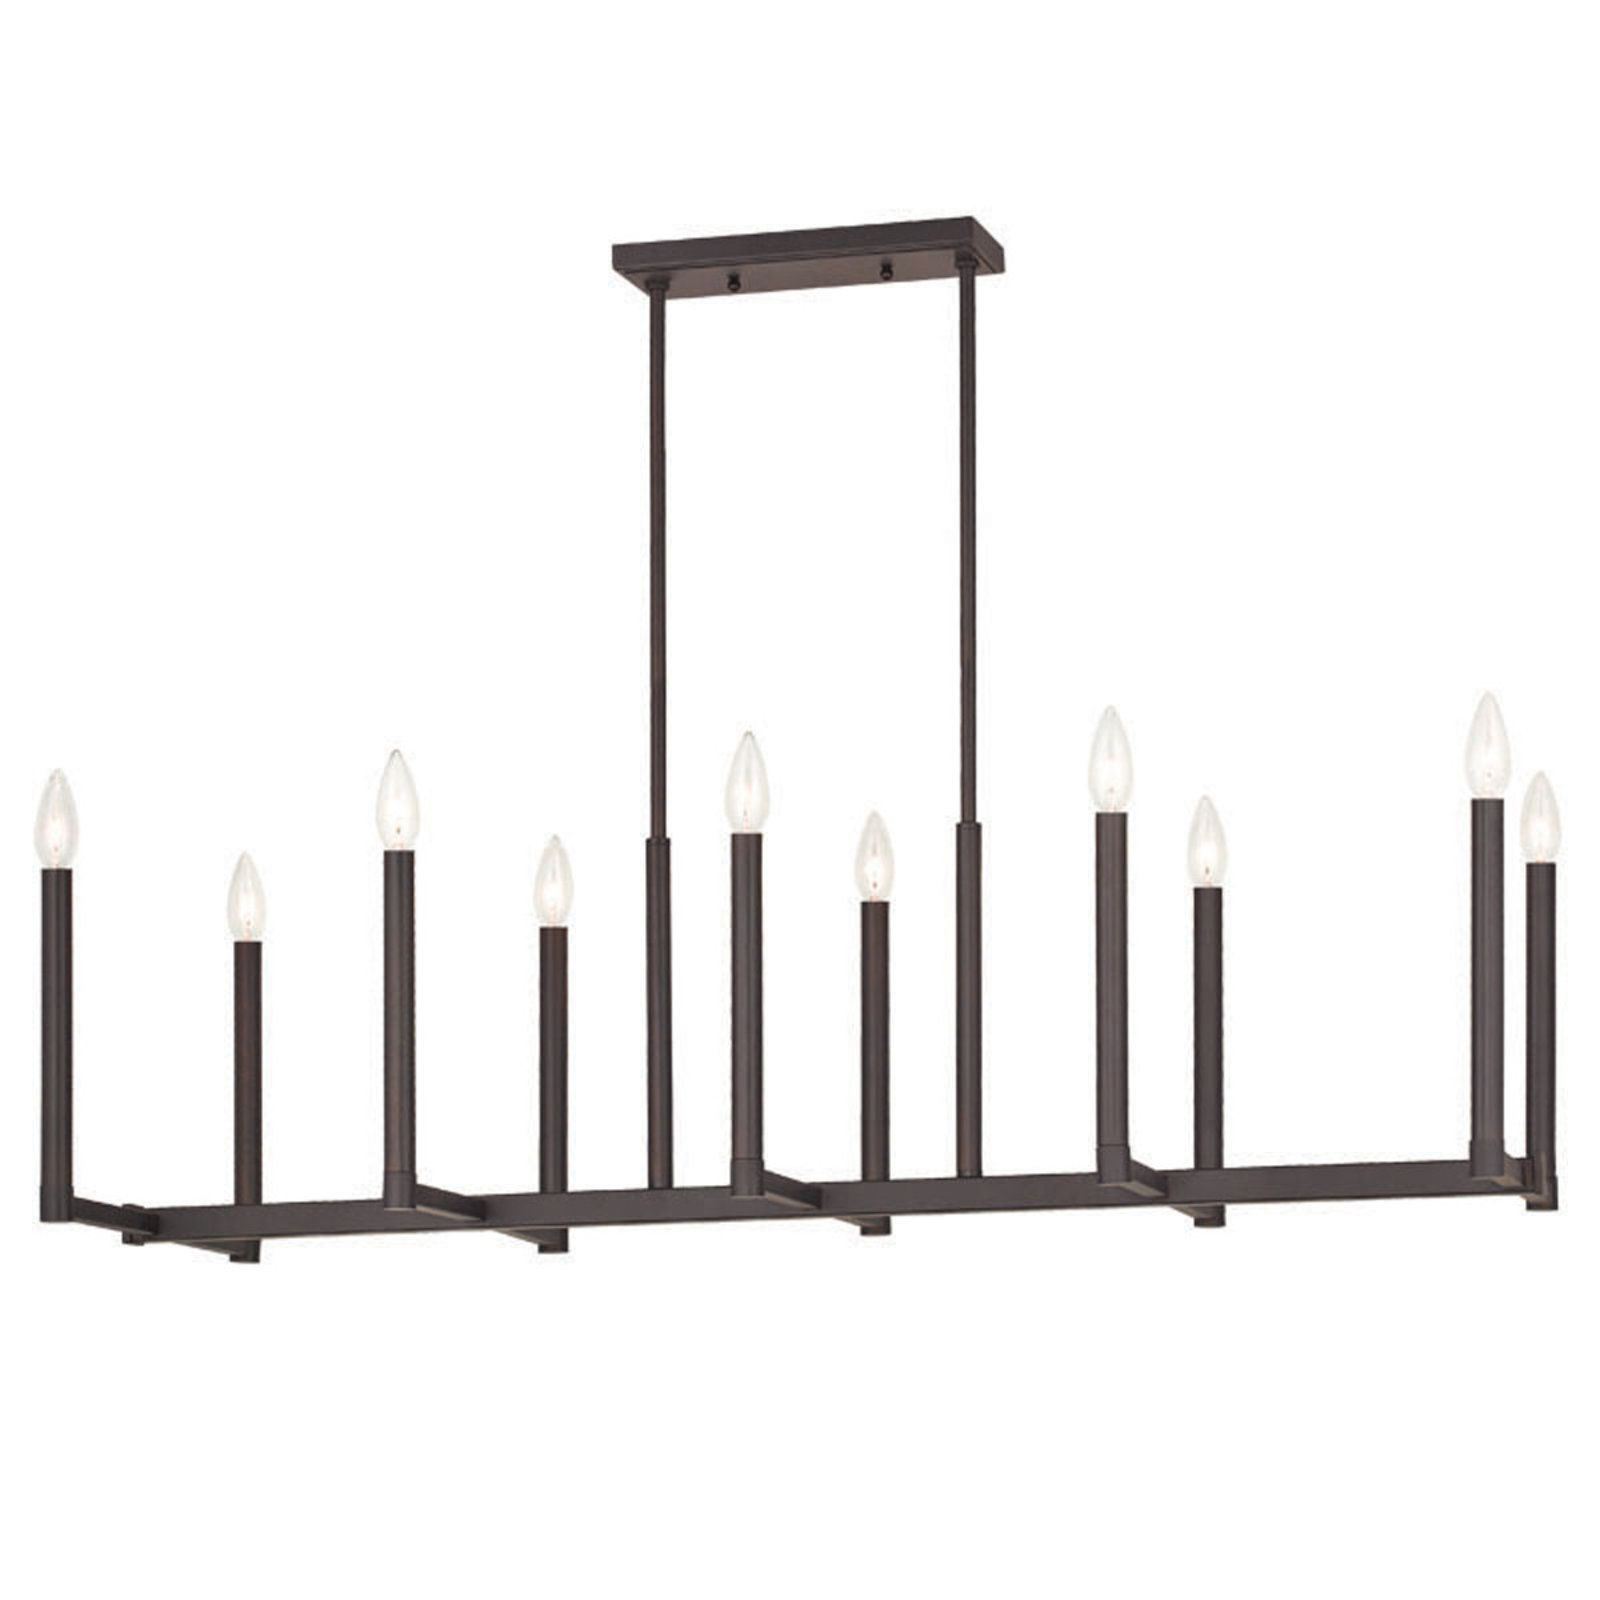 Euro Modern Candelabra Linear Chandelier 10 Light